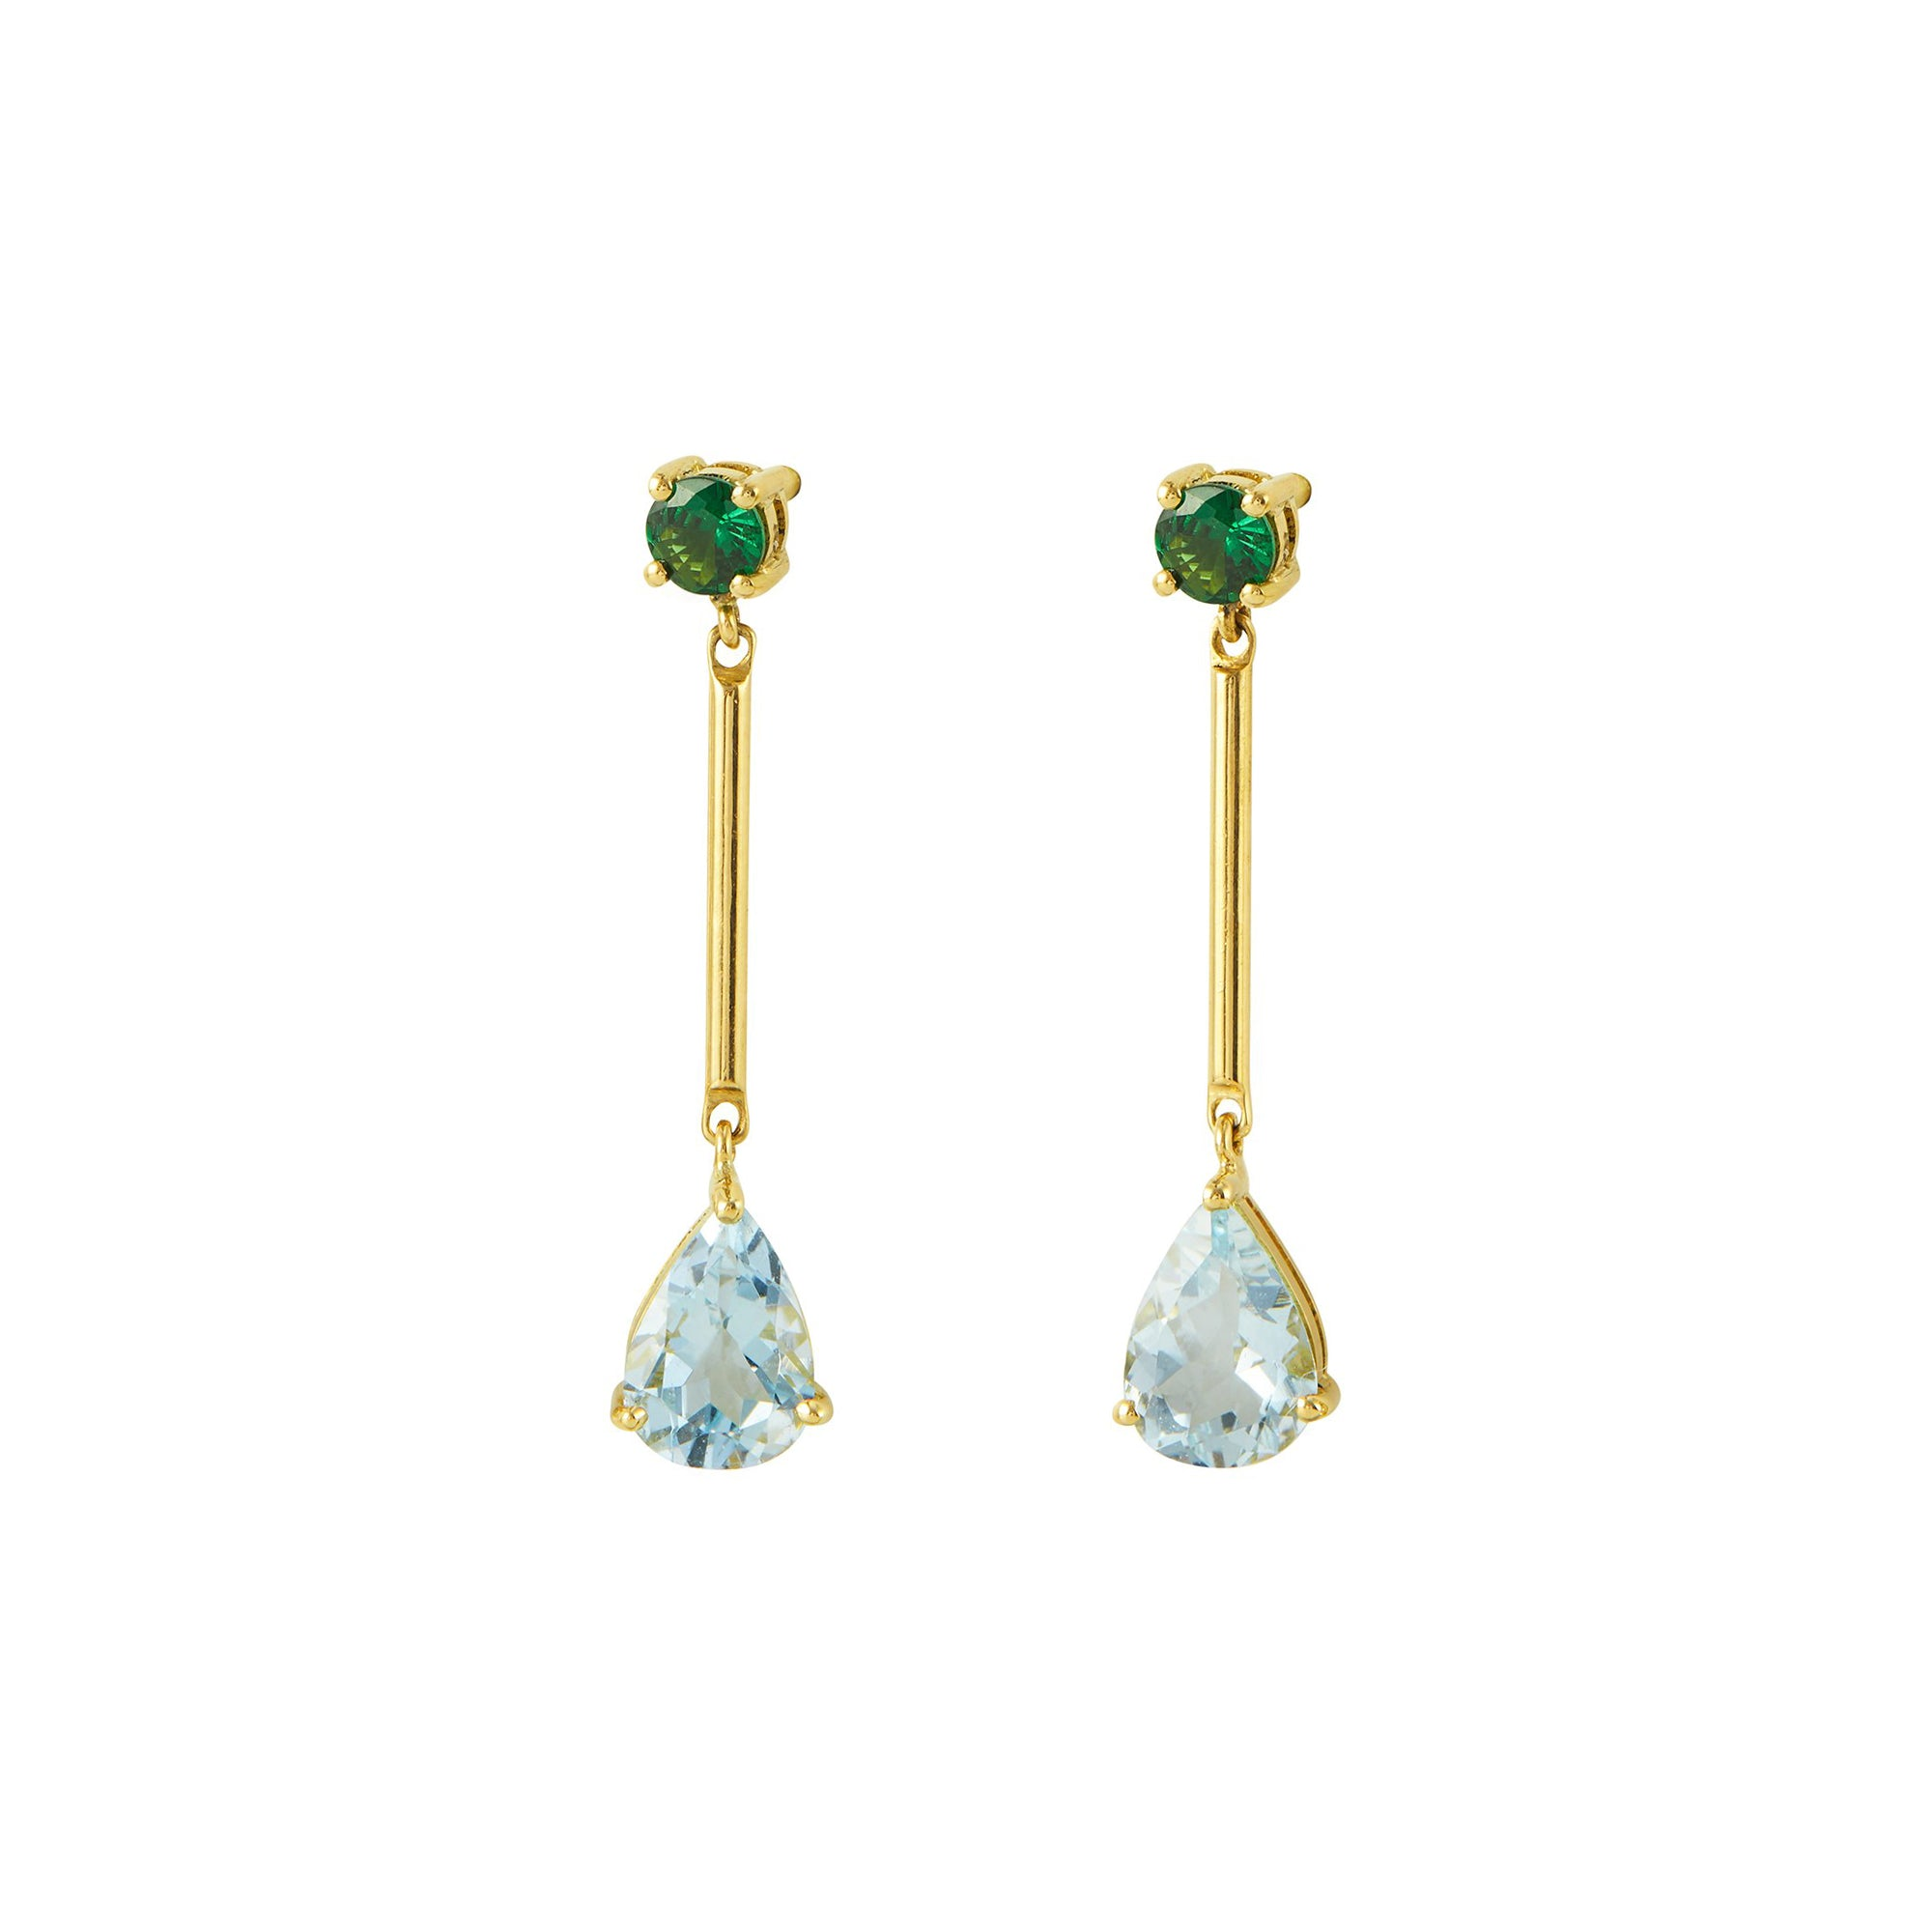 Tsavorite and Aquamarine Raindrop Earrings by Yi Collection for Broken English Jewelry